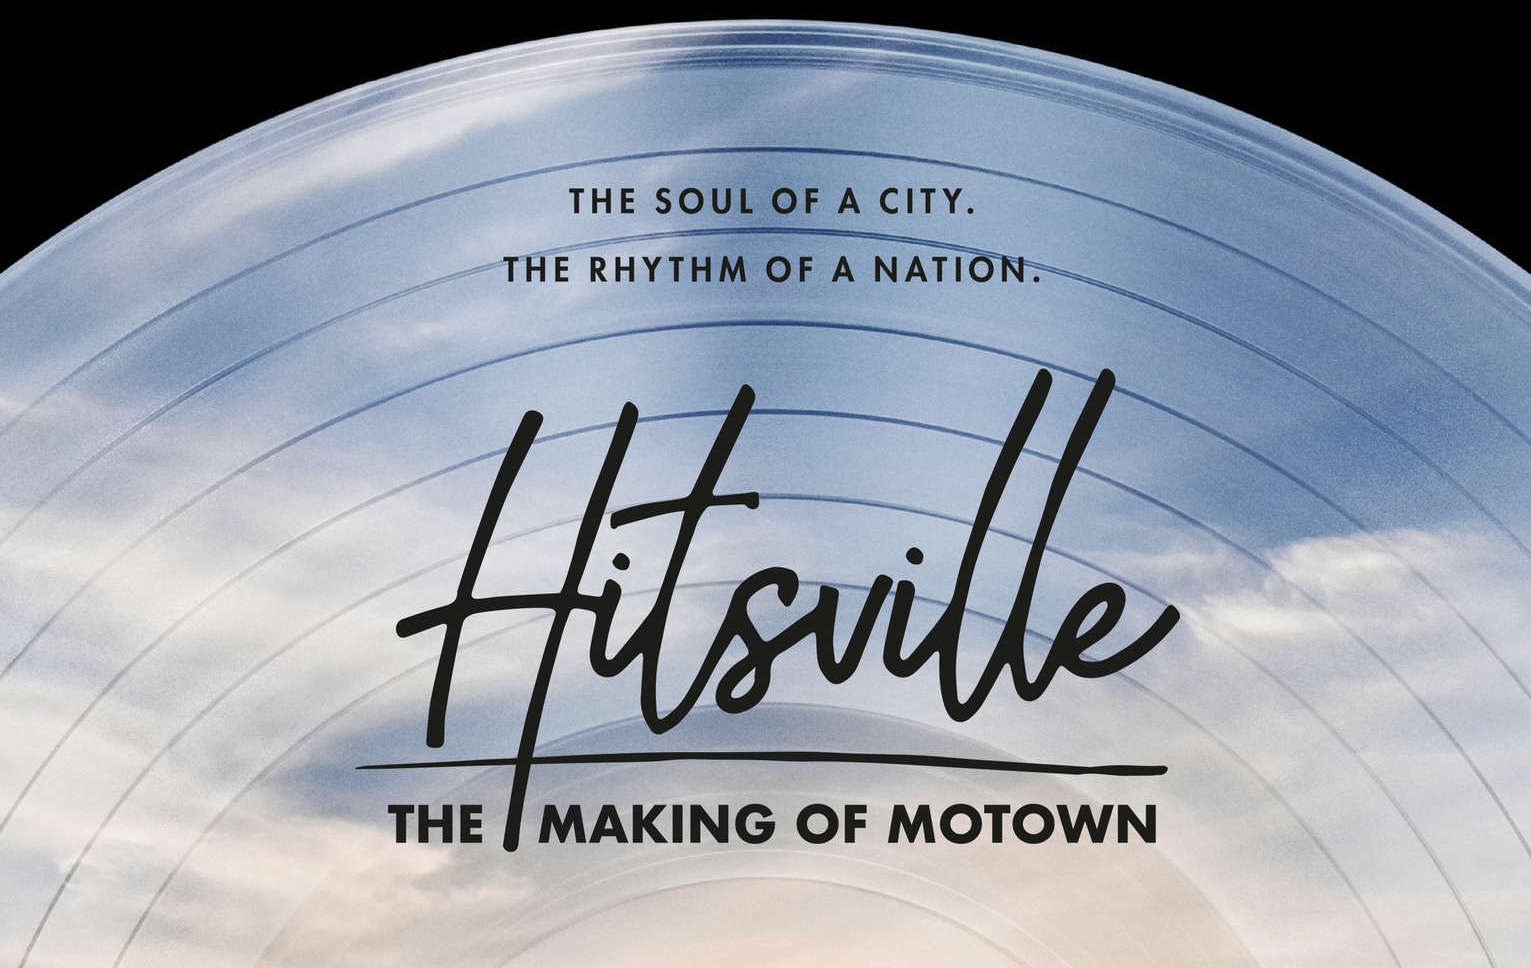 Hitsville the making of motown